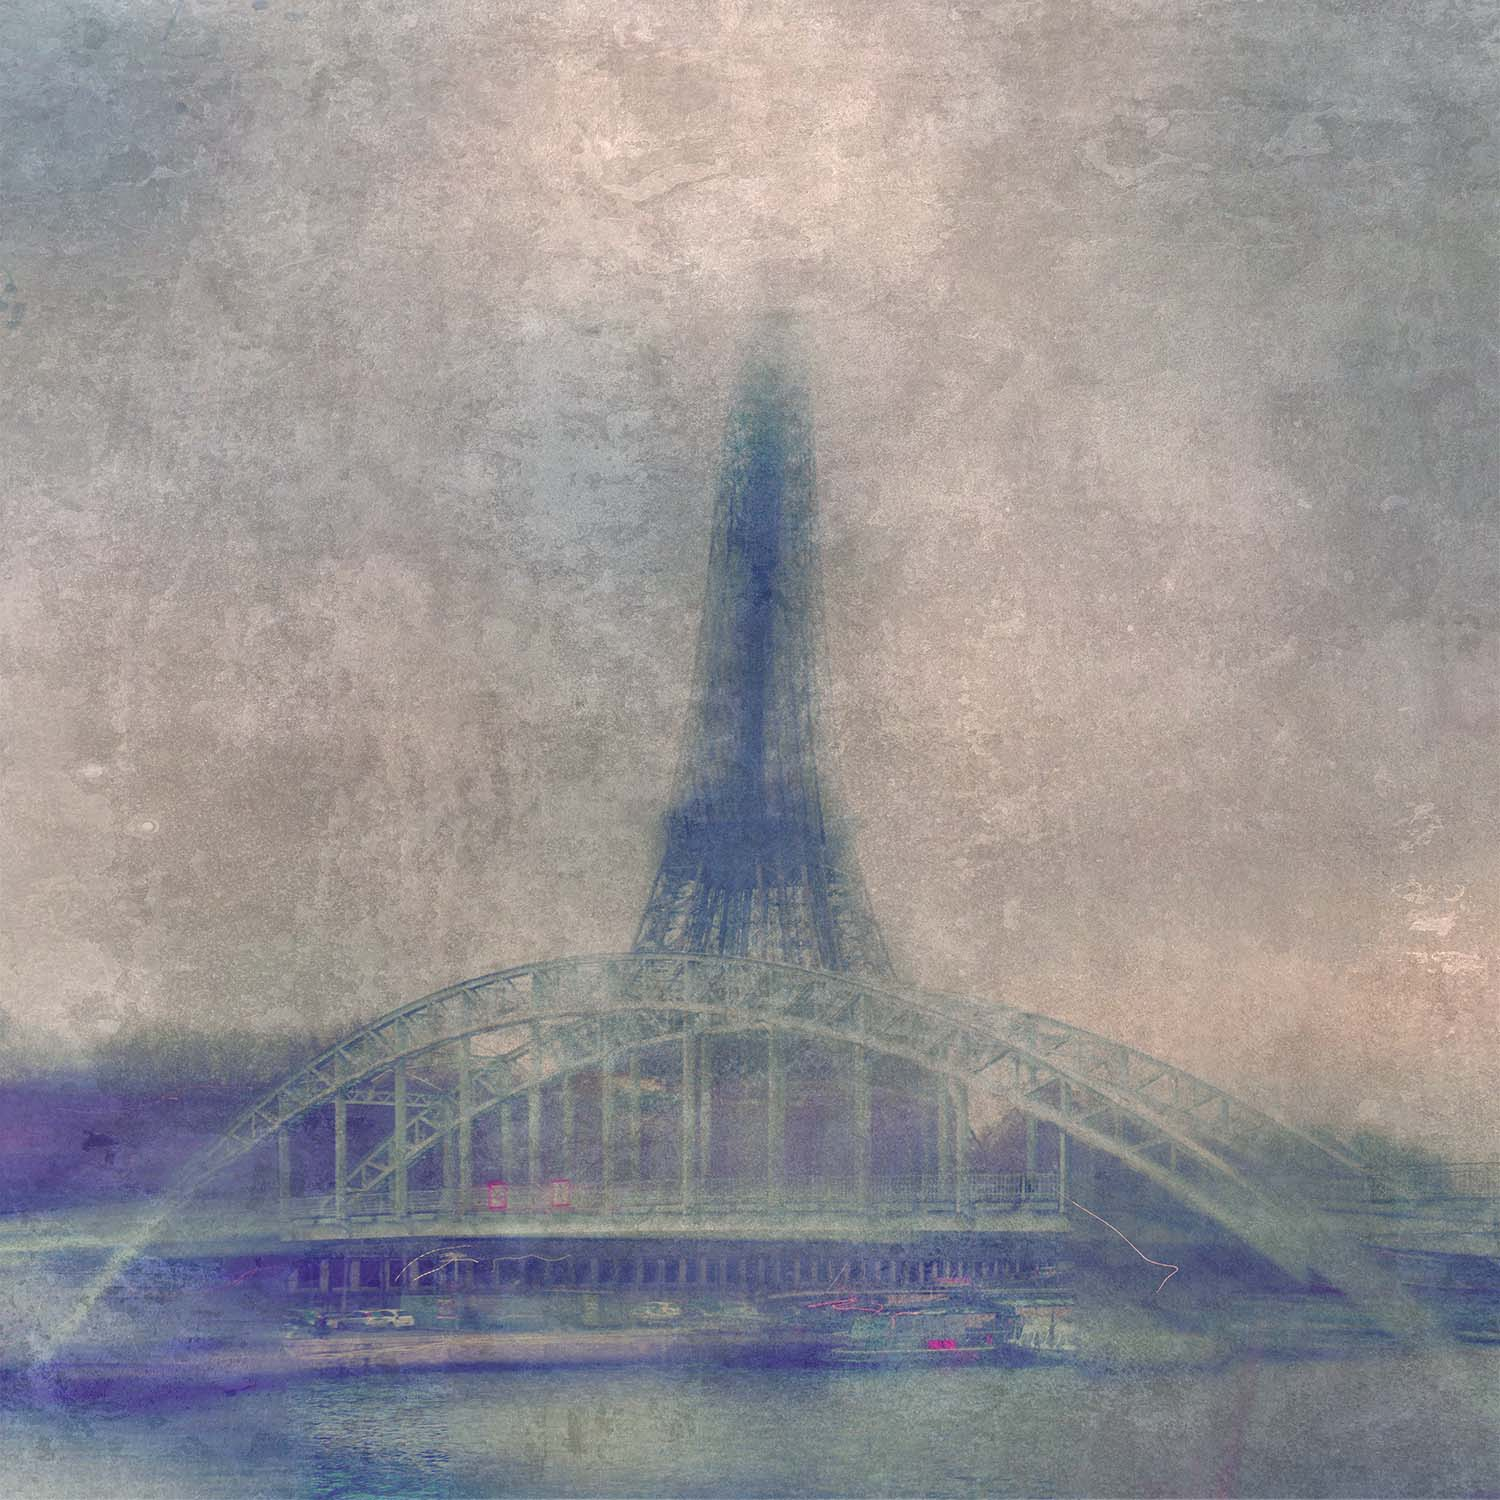 Tour Eiffel, Paris, Paul-Louis Leger, photographe, photographie, Par ici